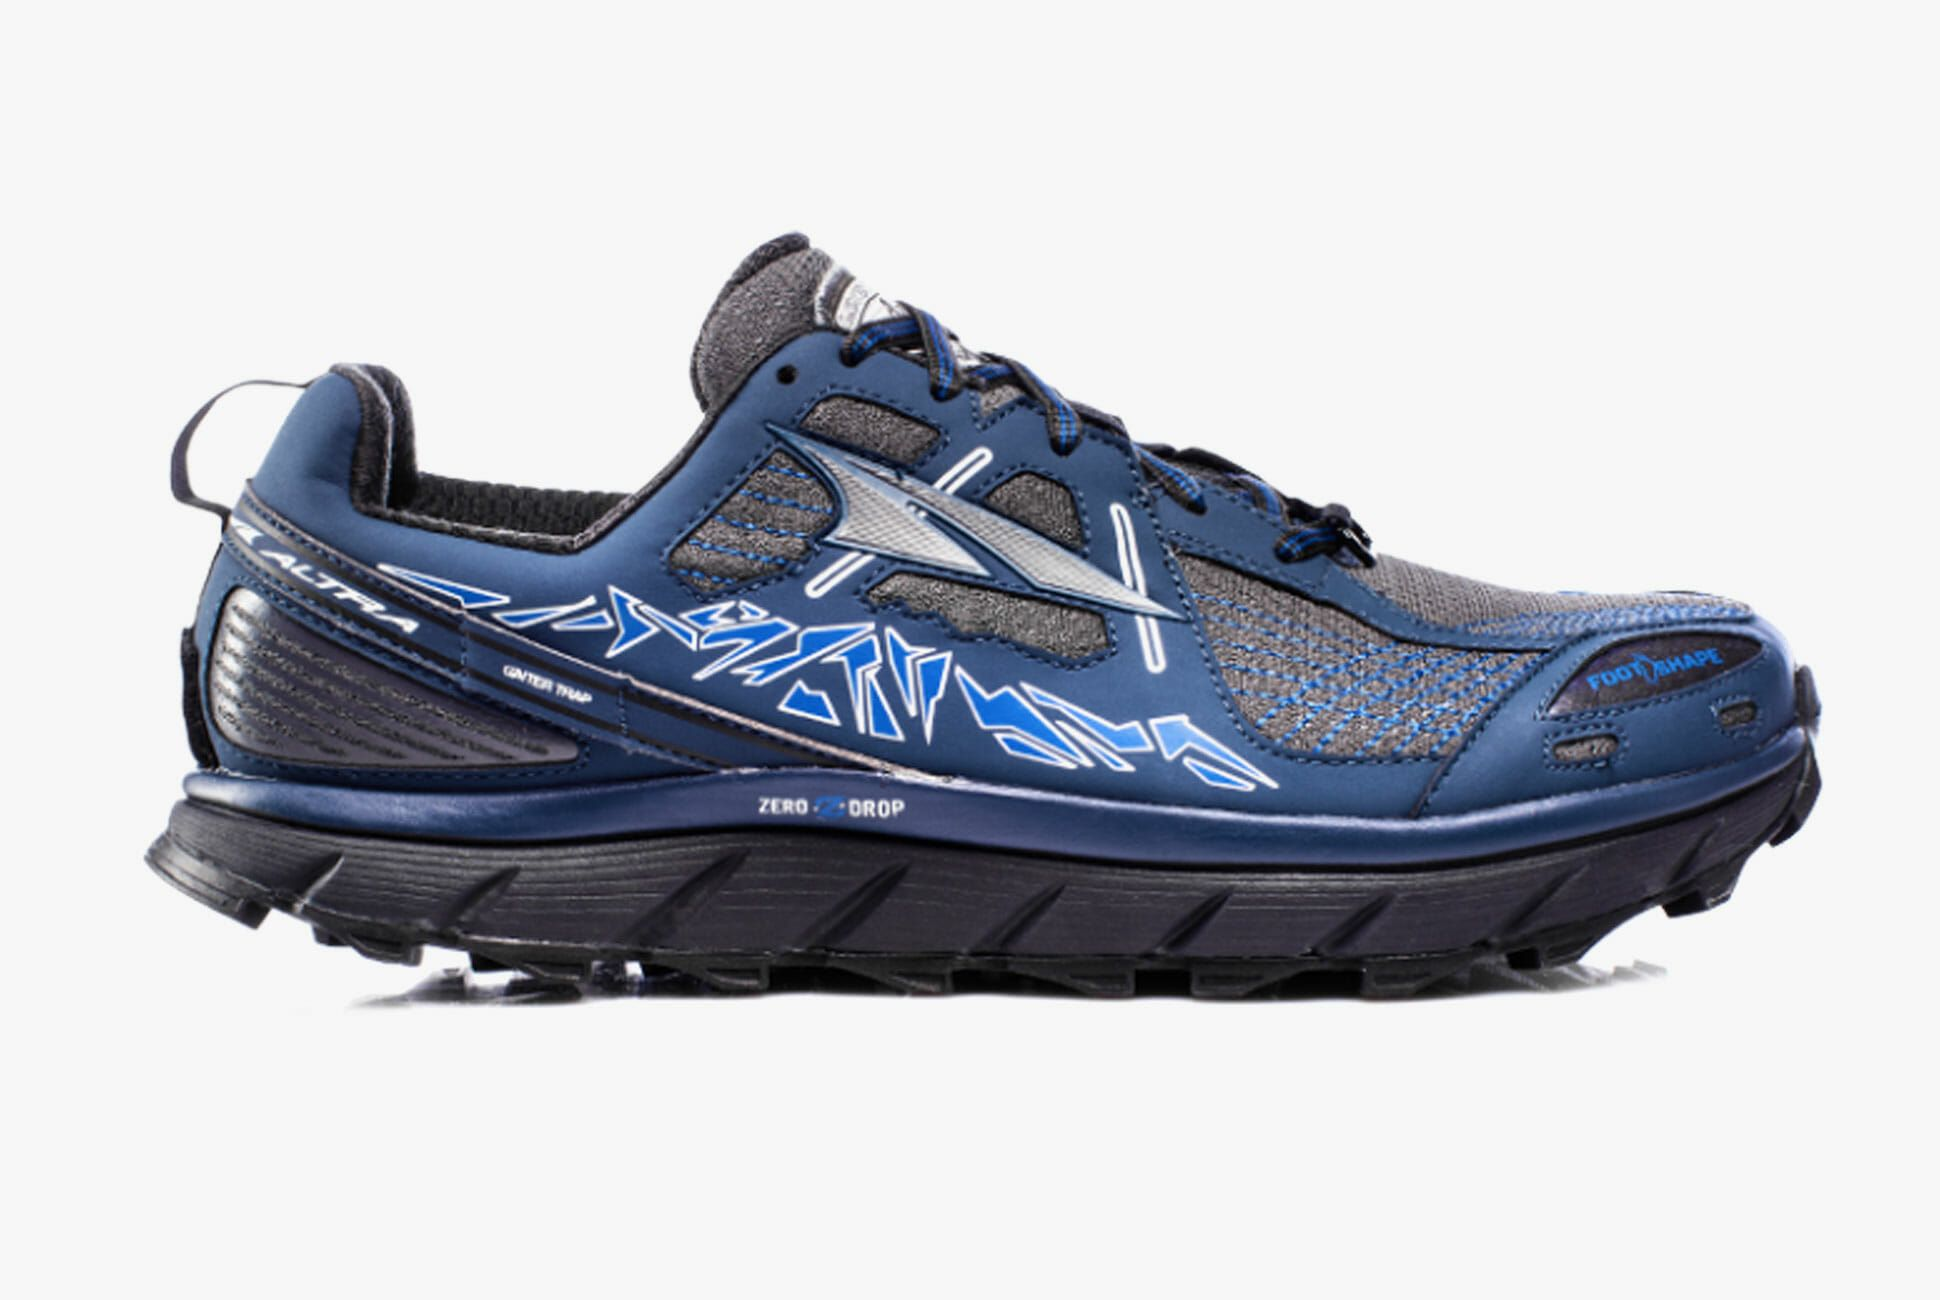 factory outlet free delivery high quality The 12 Best Trail Running Shoes of 2018 • Gear Patrol